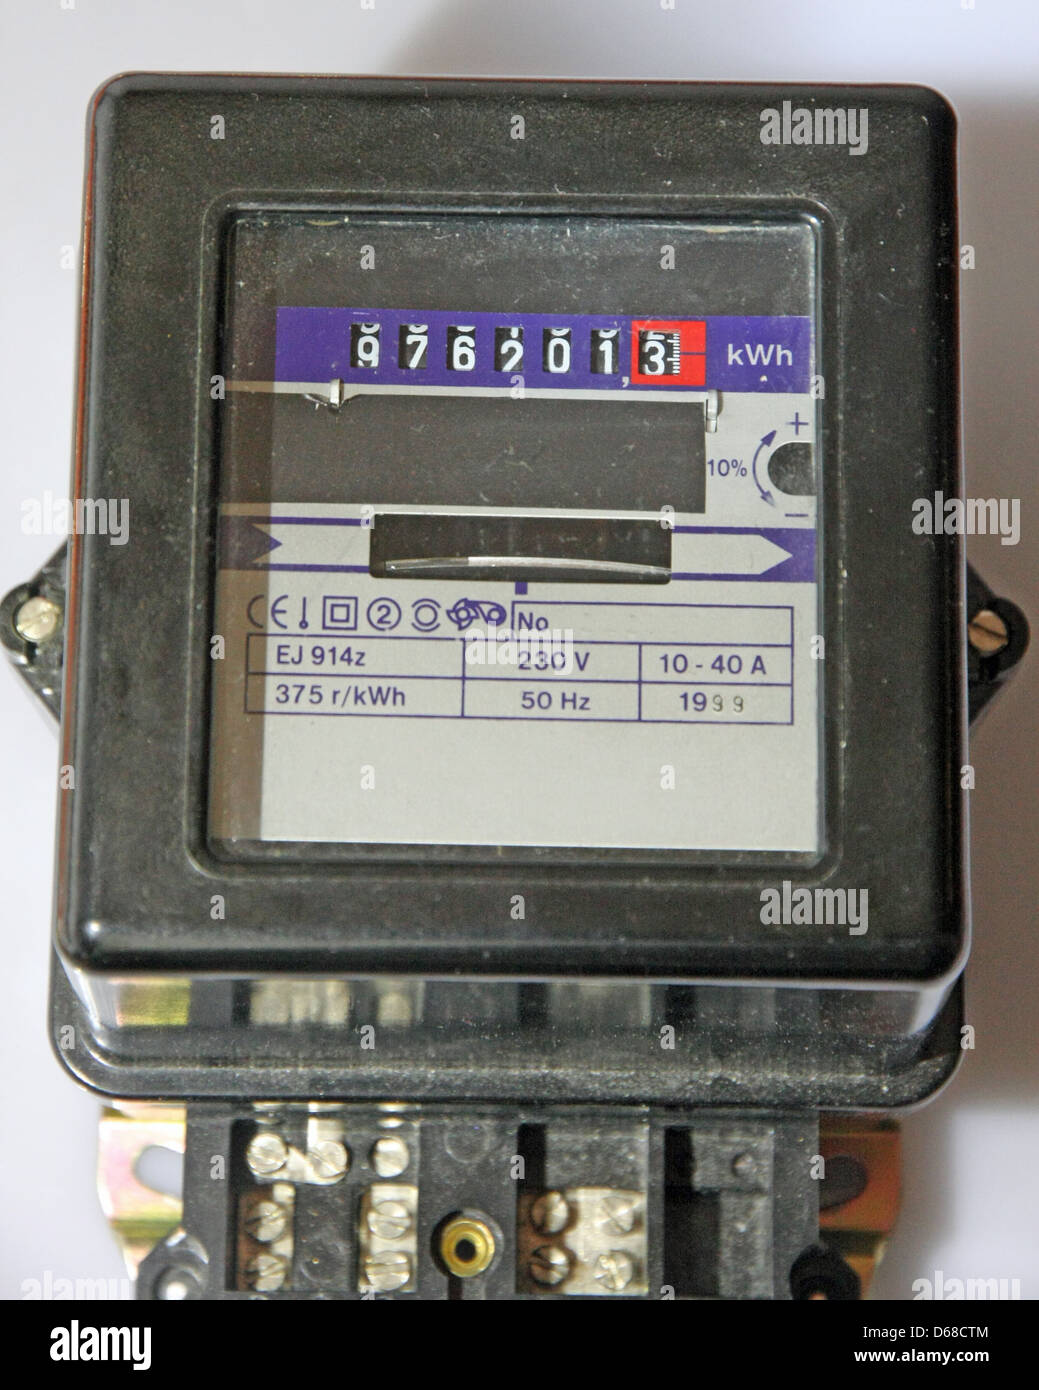 electrical energy meter for the detection of consumption - Stock Image